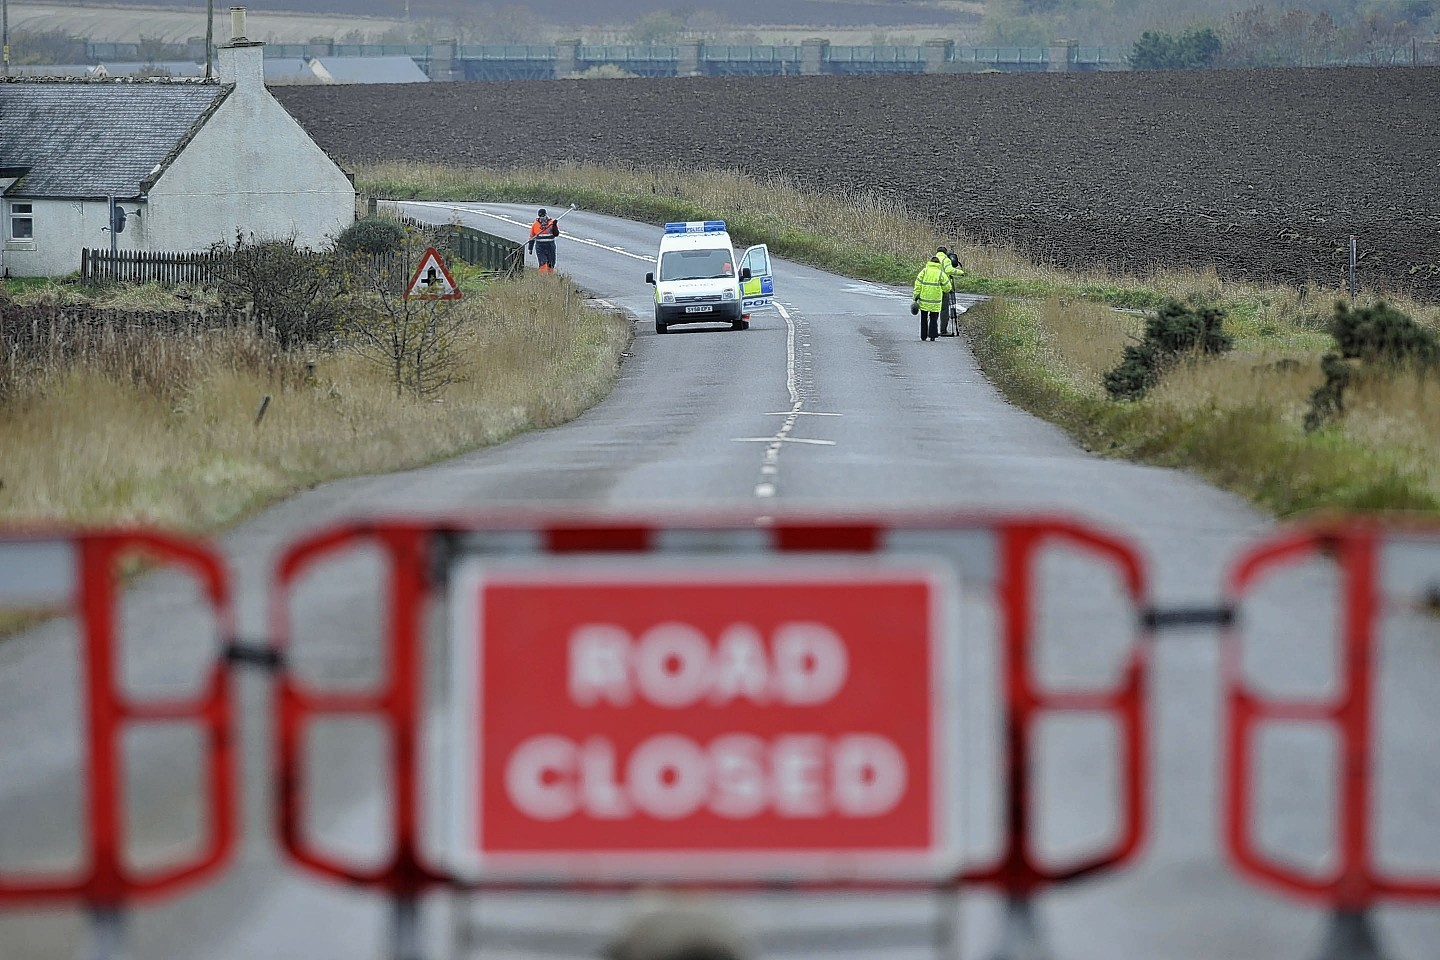 The Scene of the A937 crash